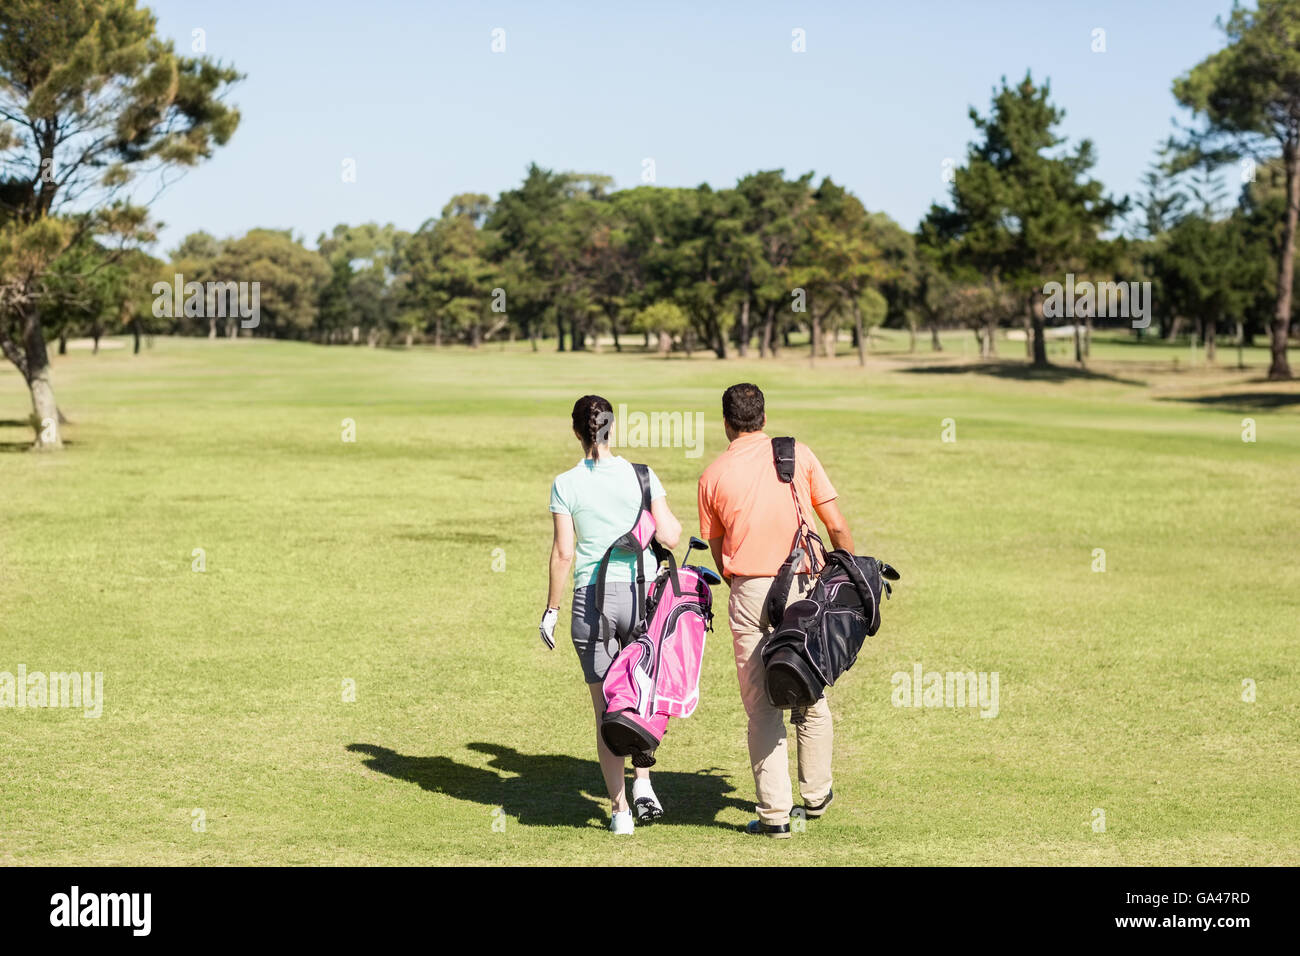 Rear view of couple carrying golf bags - Stock Image